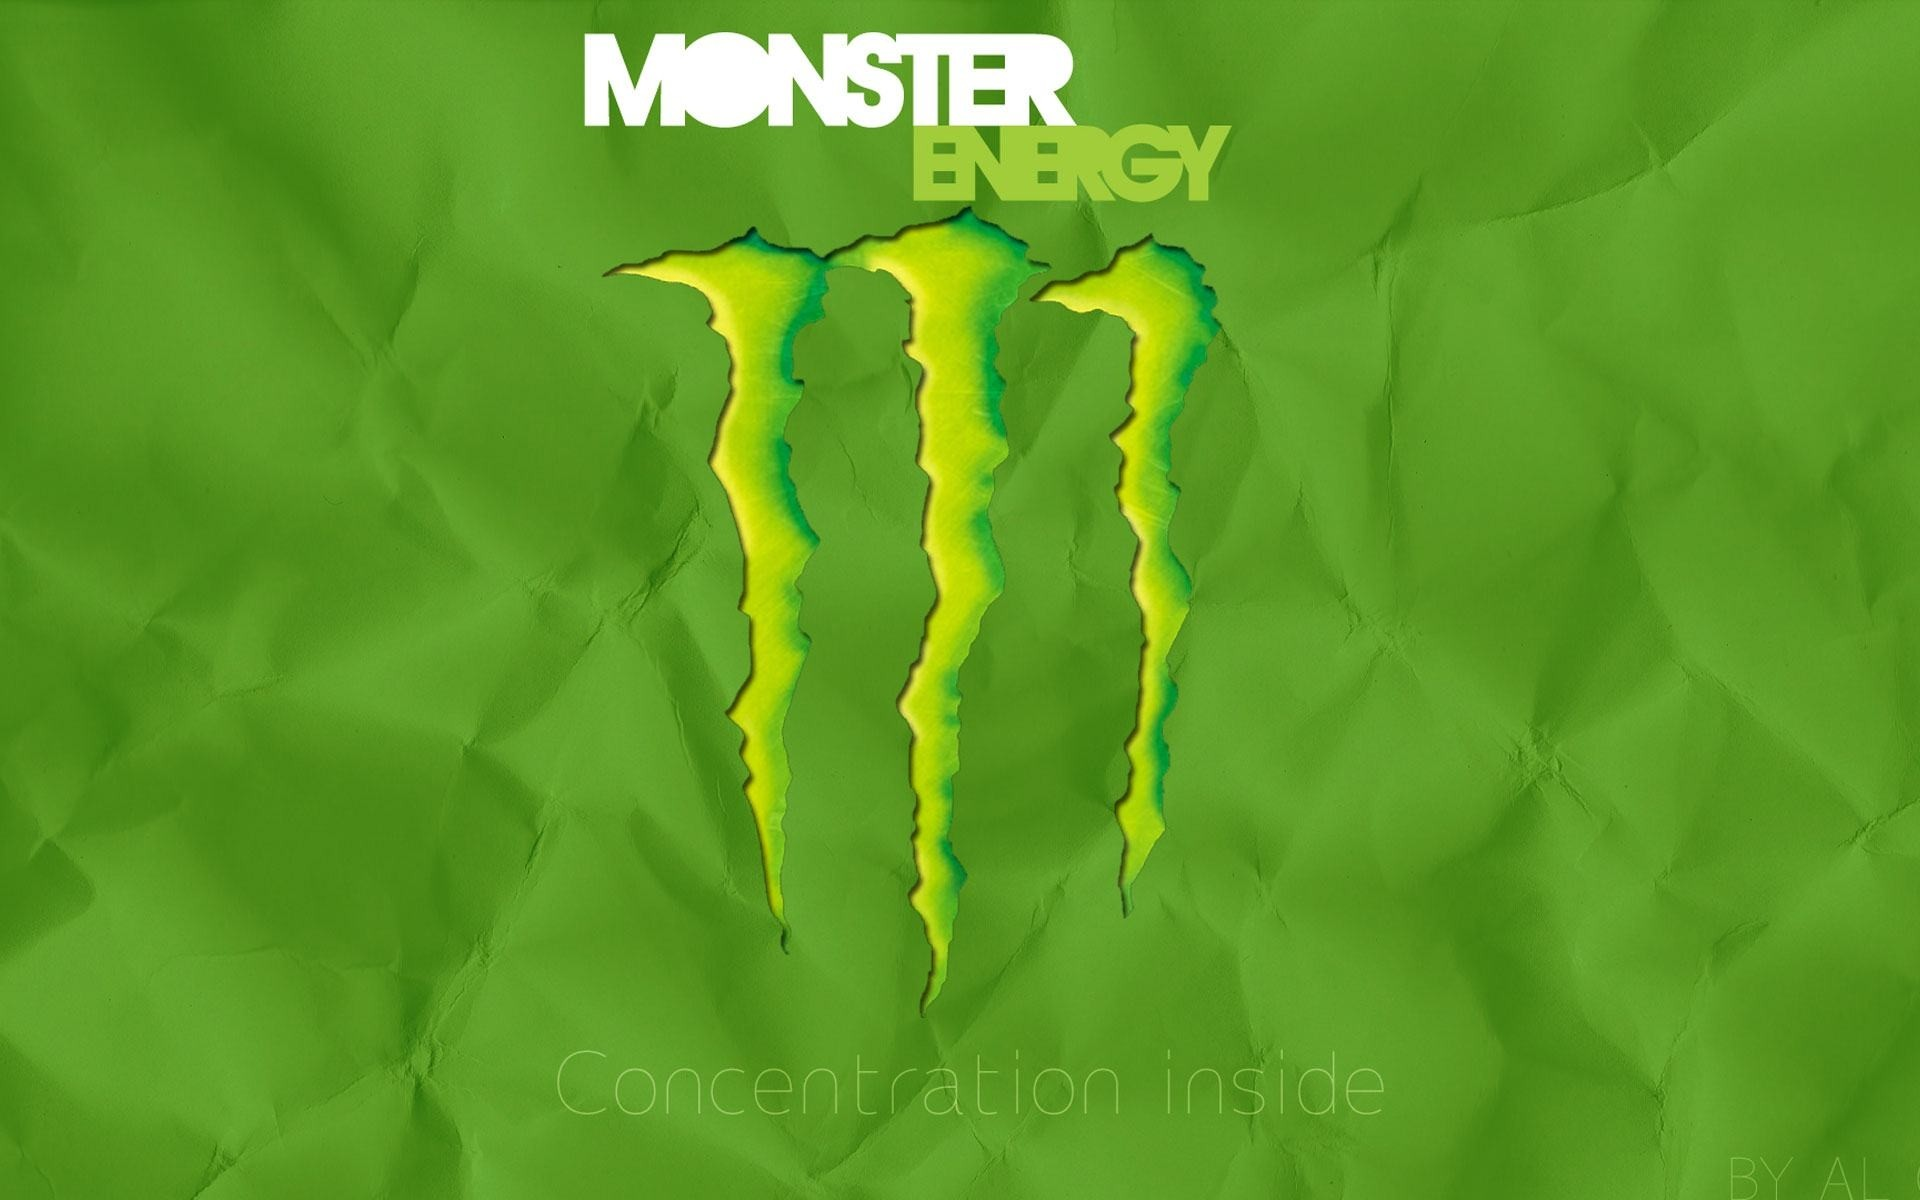 1920x1280 Monster Energy Wallpapers Wallpaper For Laptop